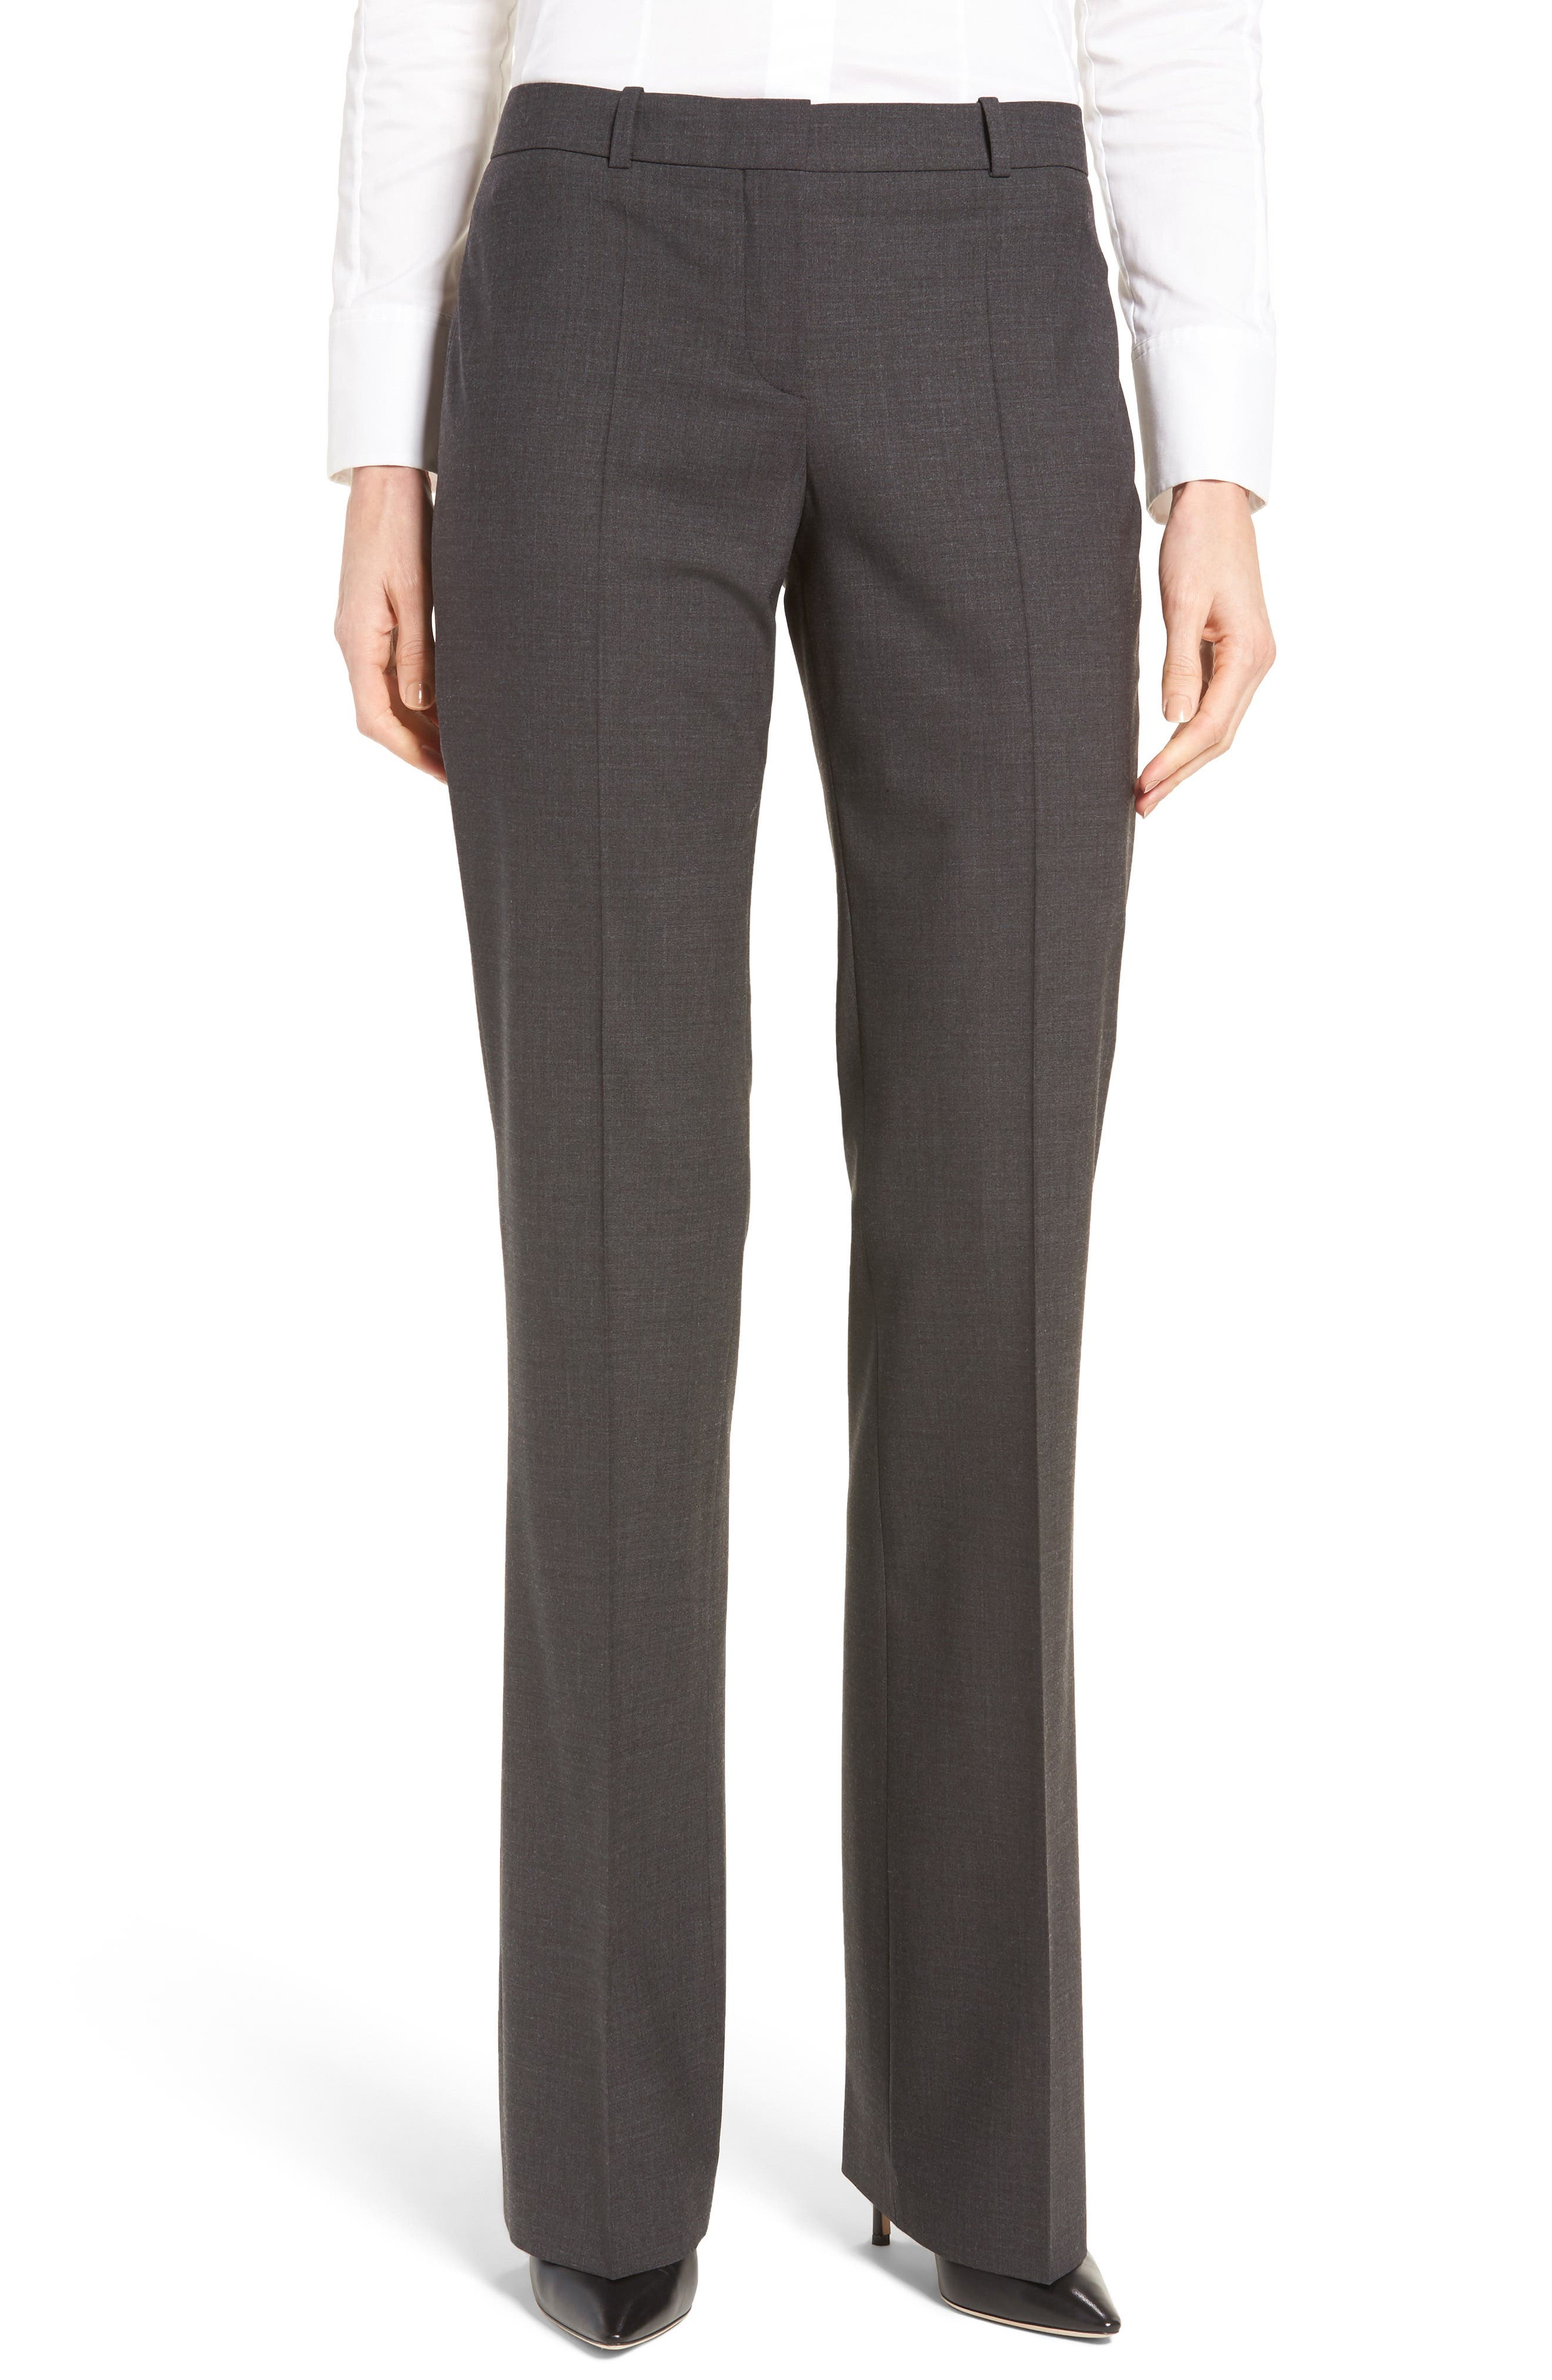 BOSS Tulea3 Tropical Stretch Wool Trousers, Main, color, CHARCOAL